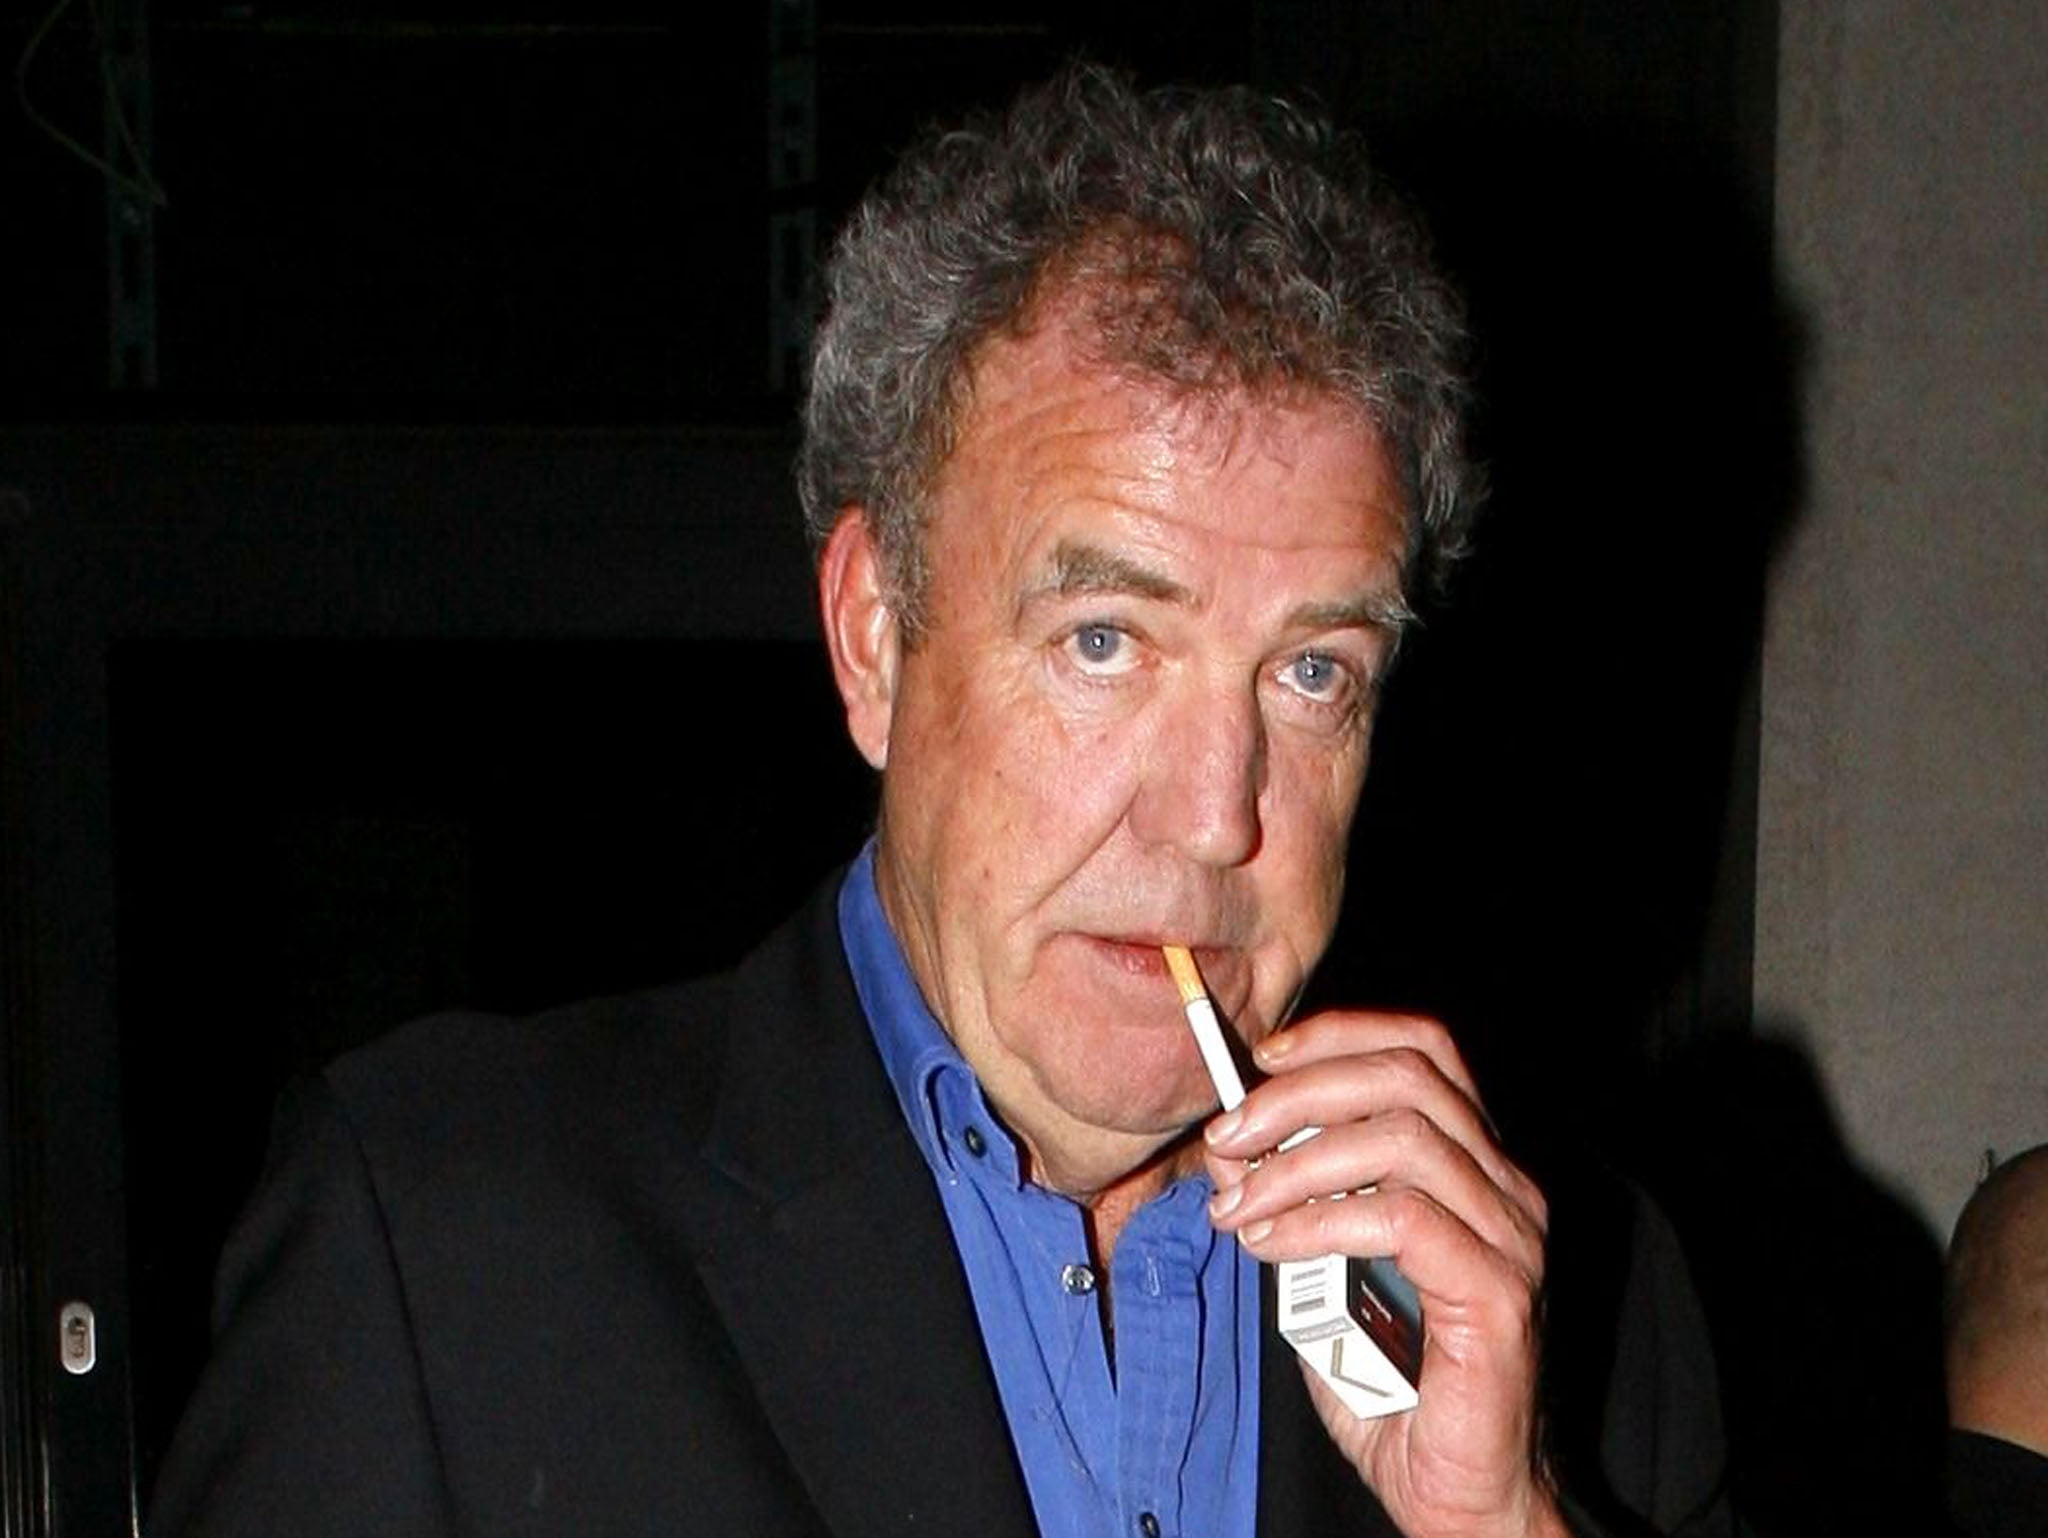 jeremy clarkson twitterjeremy clarkson twitter, jeremy clarkson cars, jeremy clarkson young, jeremy clarkson новое шоу, jeremy clarkson the italian job, jeremy clarkson books, jeremy clarkson 2017, jeremy clarkson's house, jeremy clarkson bracelet, jeremy clarkson power, jeremy clarkson family, jeremy clarkson цитаты, jeremy clarkson gif, jeremy clarkson wiki, jeremy clarkson 2016, jeremy clarkson - powered up, jeremy clarkson about russia, jeremy clarkson daughter, jeremy clarkson house was destroyed, jeremy clarkson usa